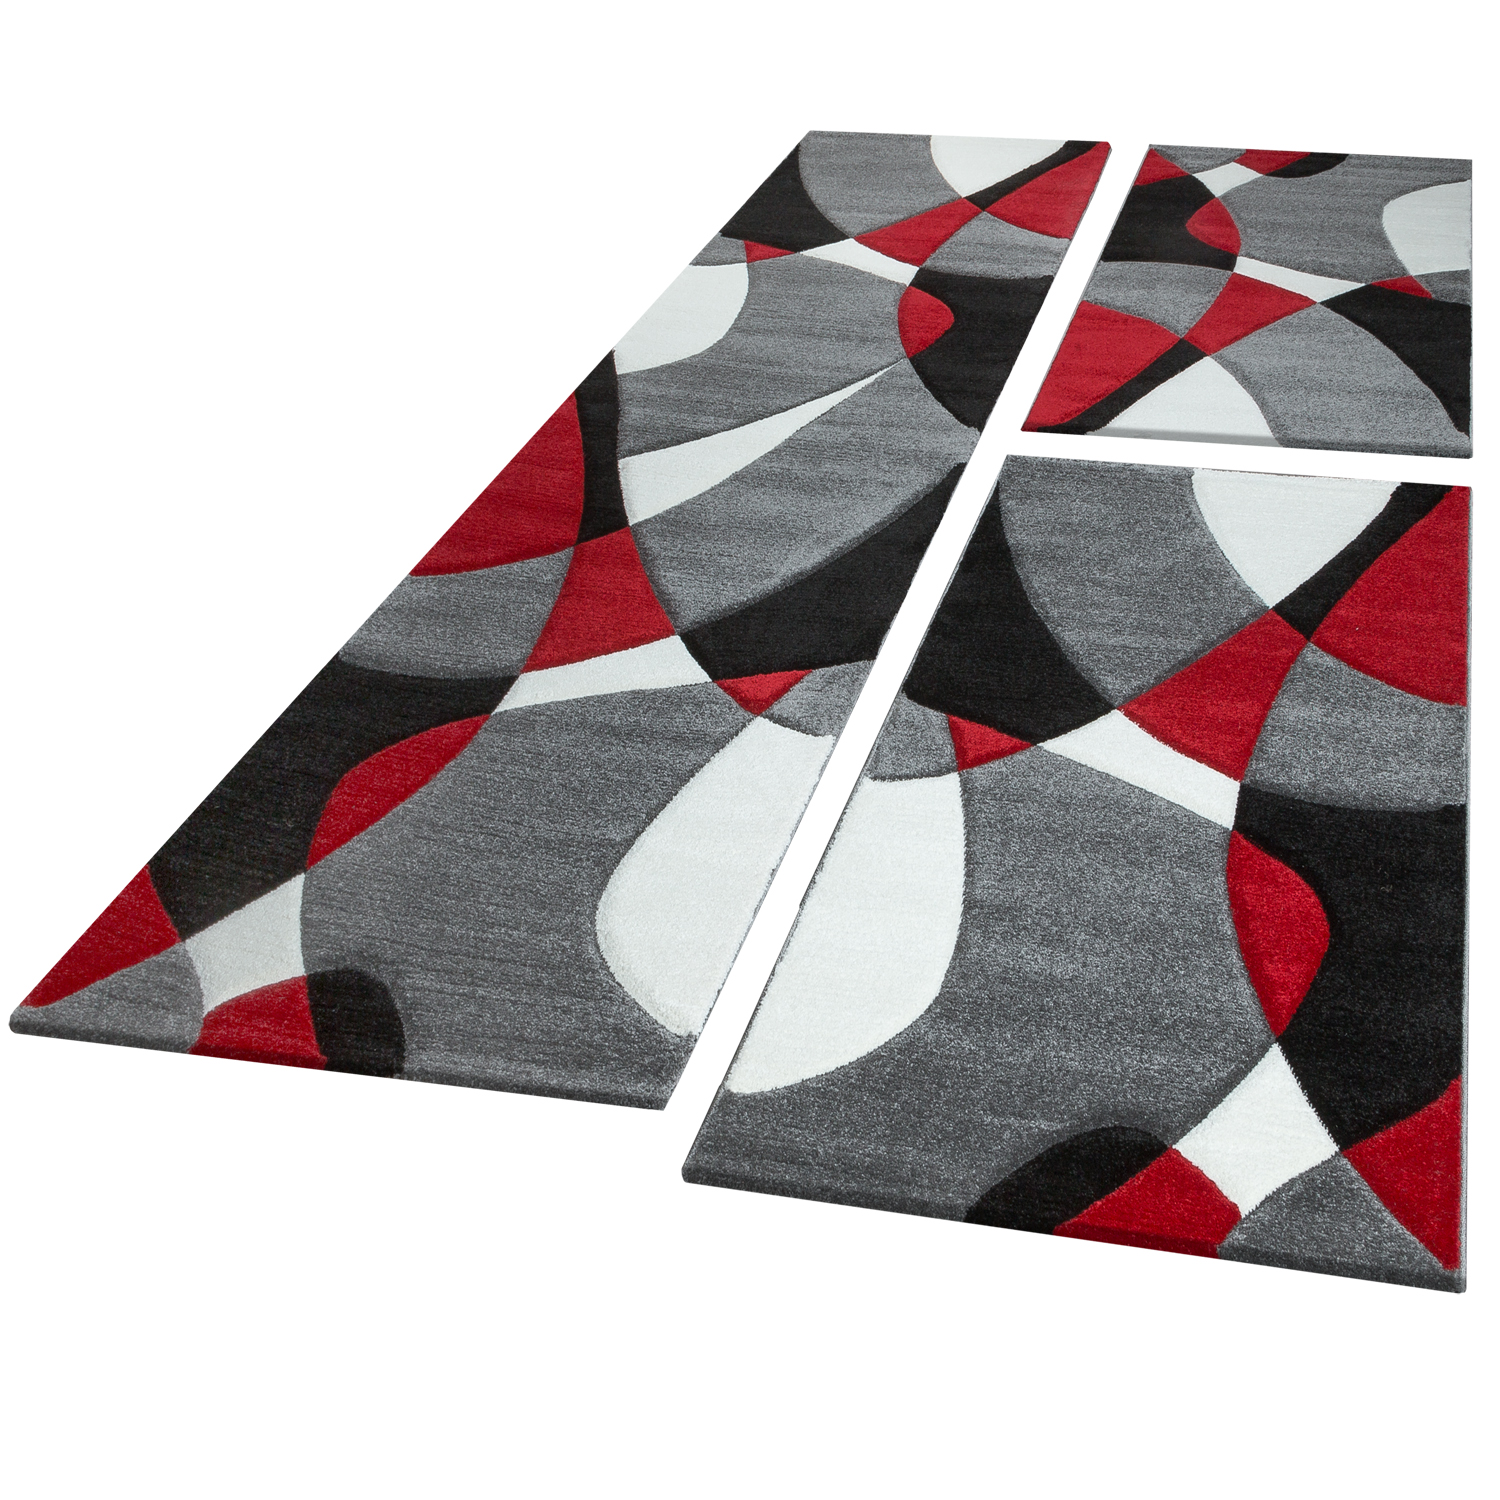 Bed Border Runner Rug Contour Cut Geometric Red Grey Runner Set 3-Piece